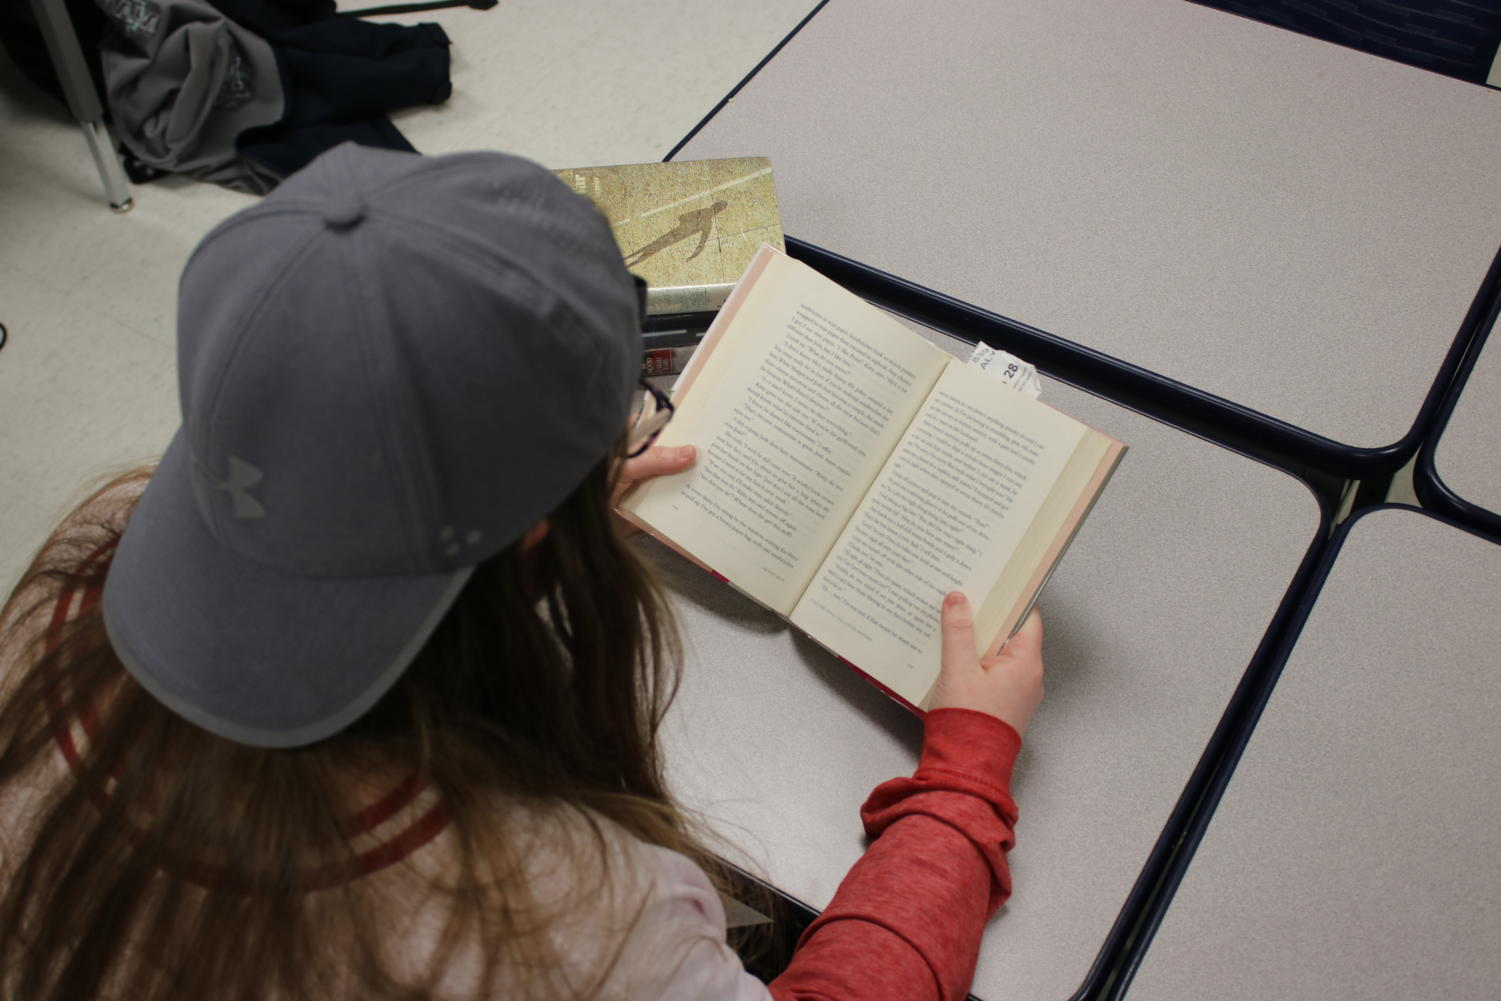 As people get older they are less likely to continue reading for pleasure. The teachers and administration should do more to promote recreational reading among high school students.